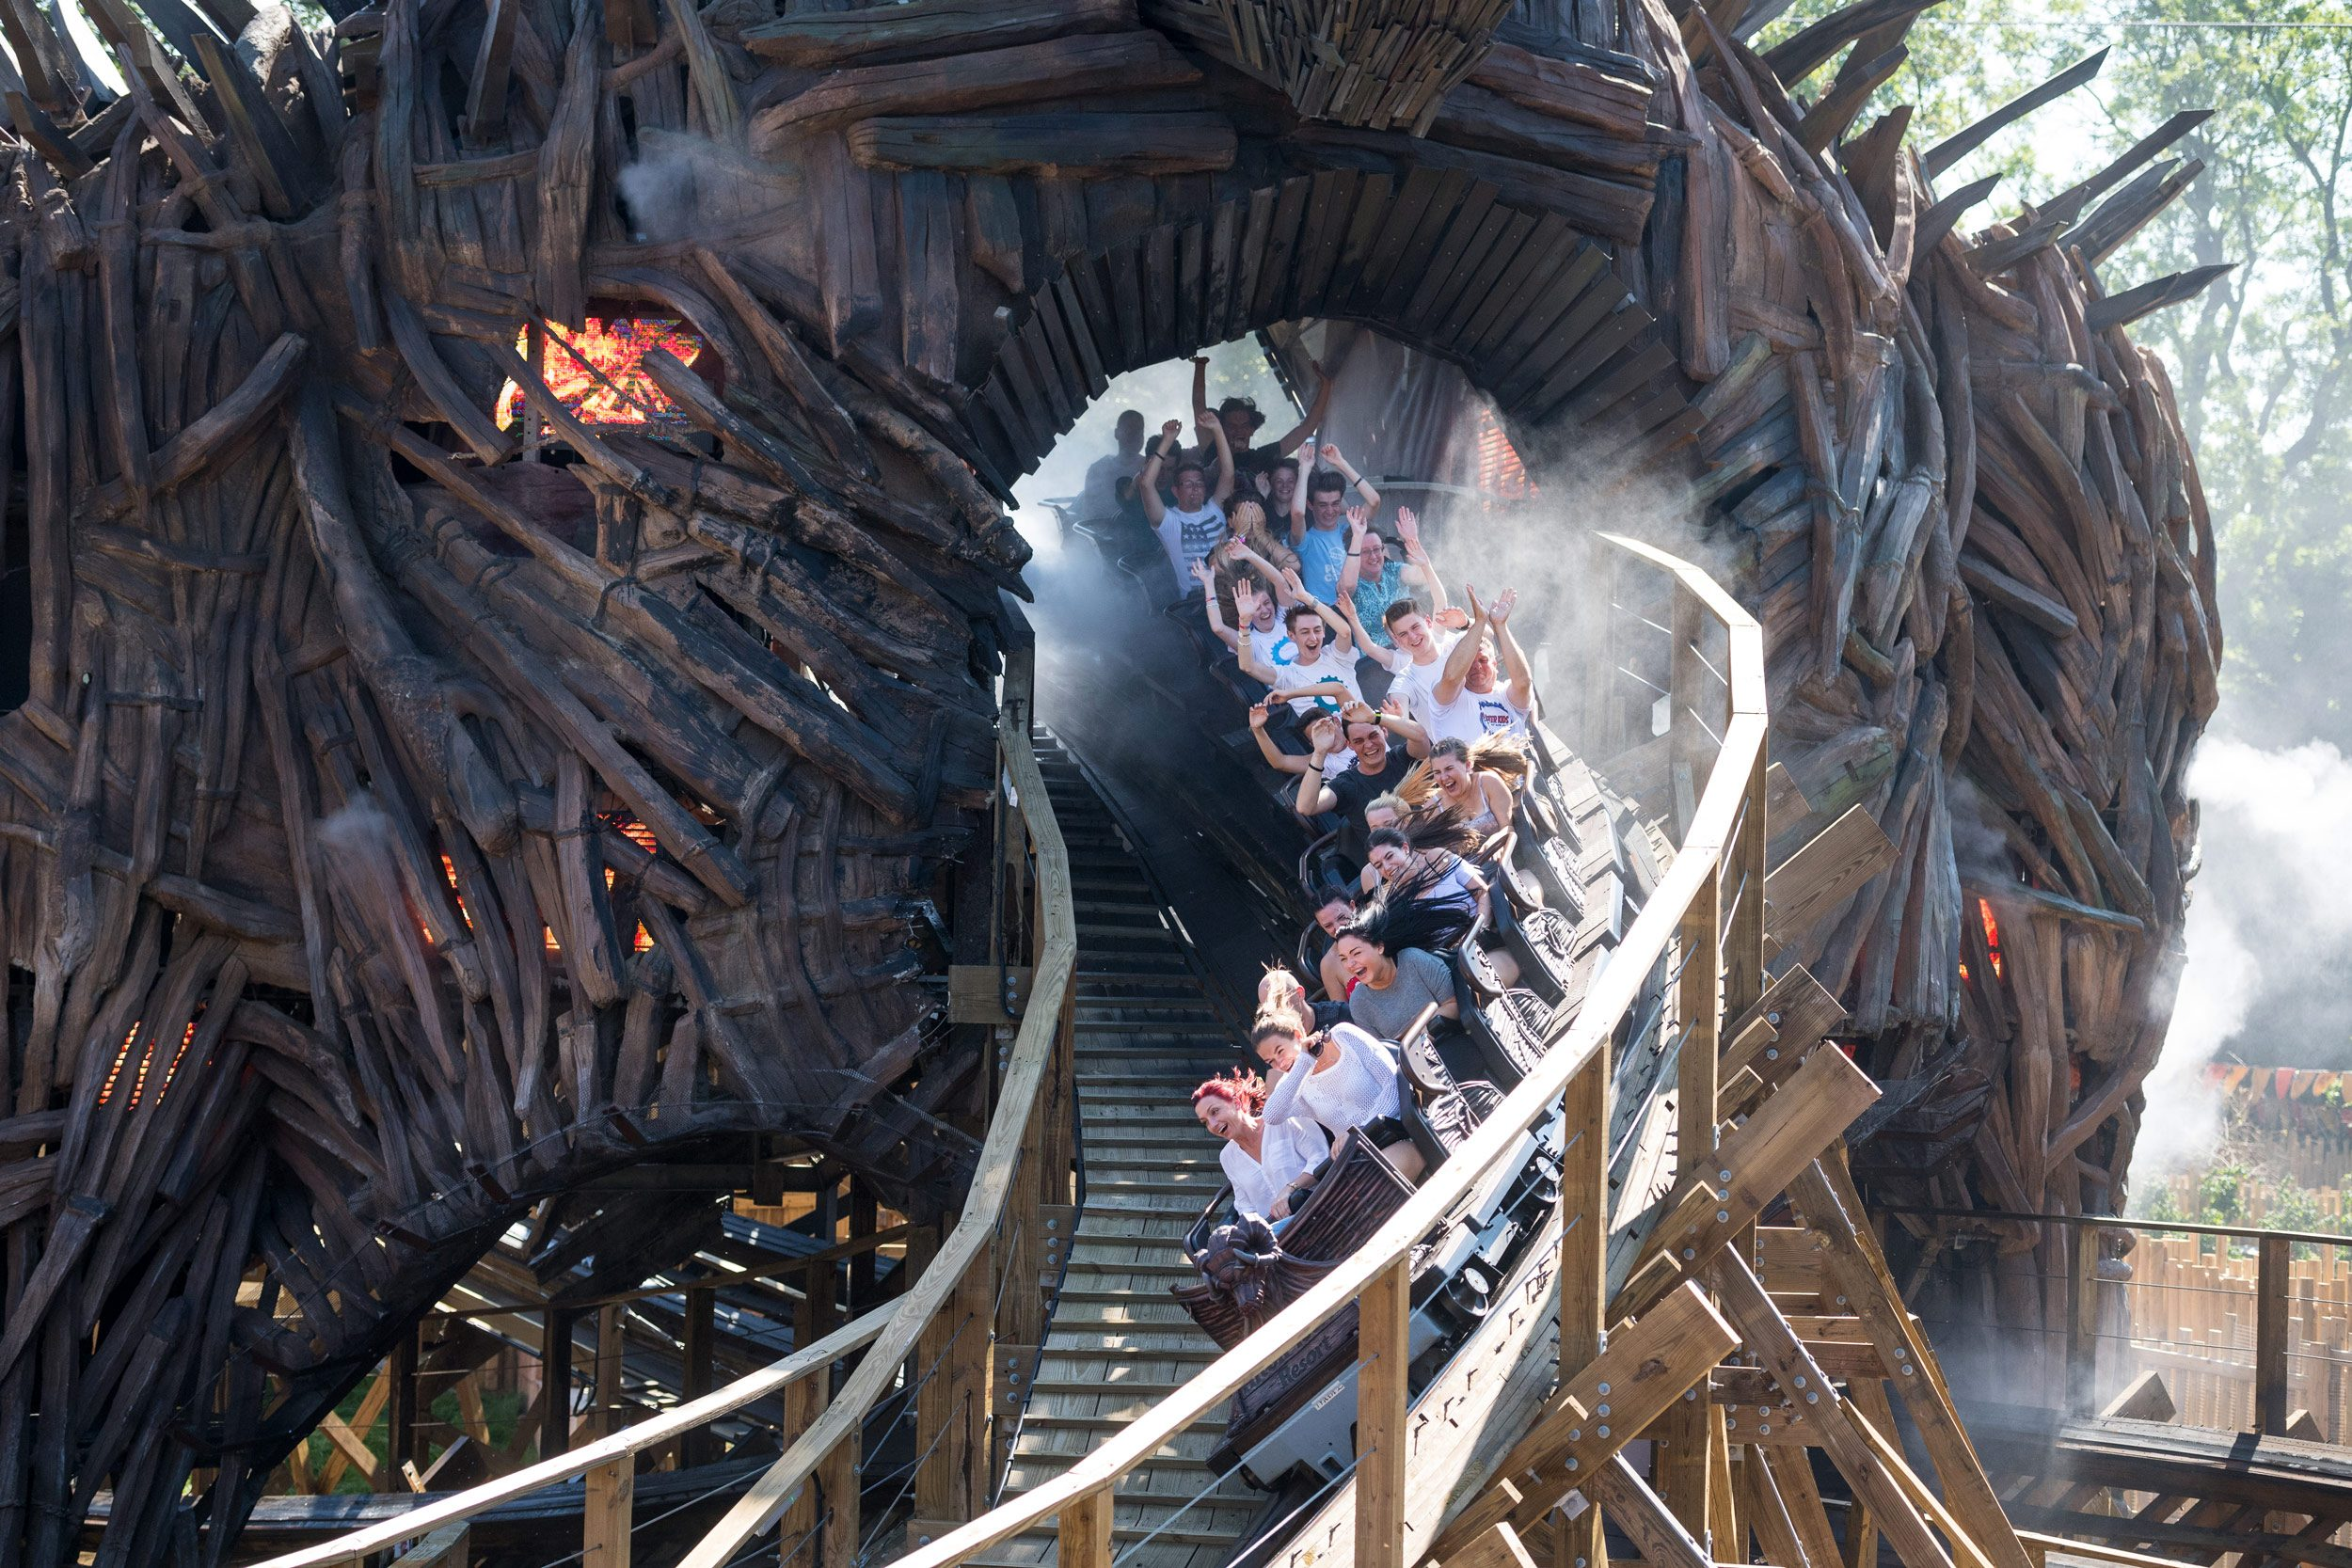 people scream as they ride on Alton Towers new rode, the wicker man, a wooden rollercoaster.